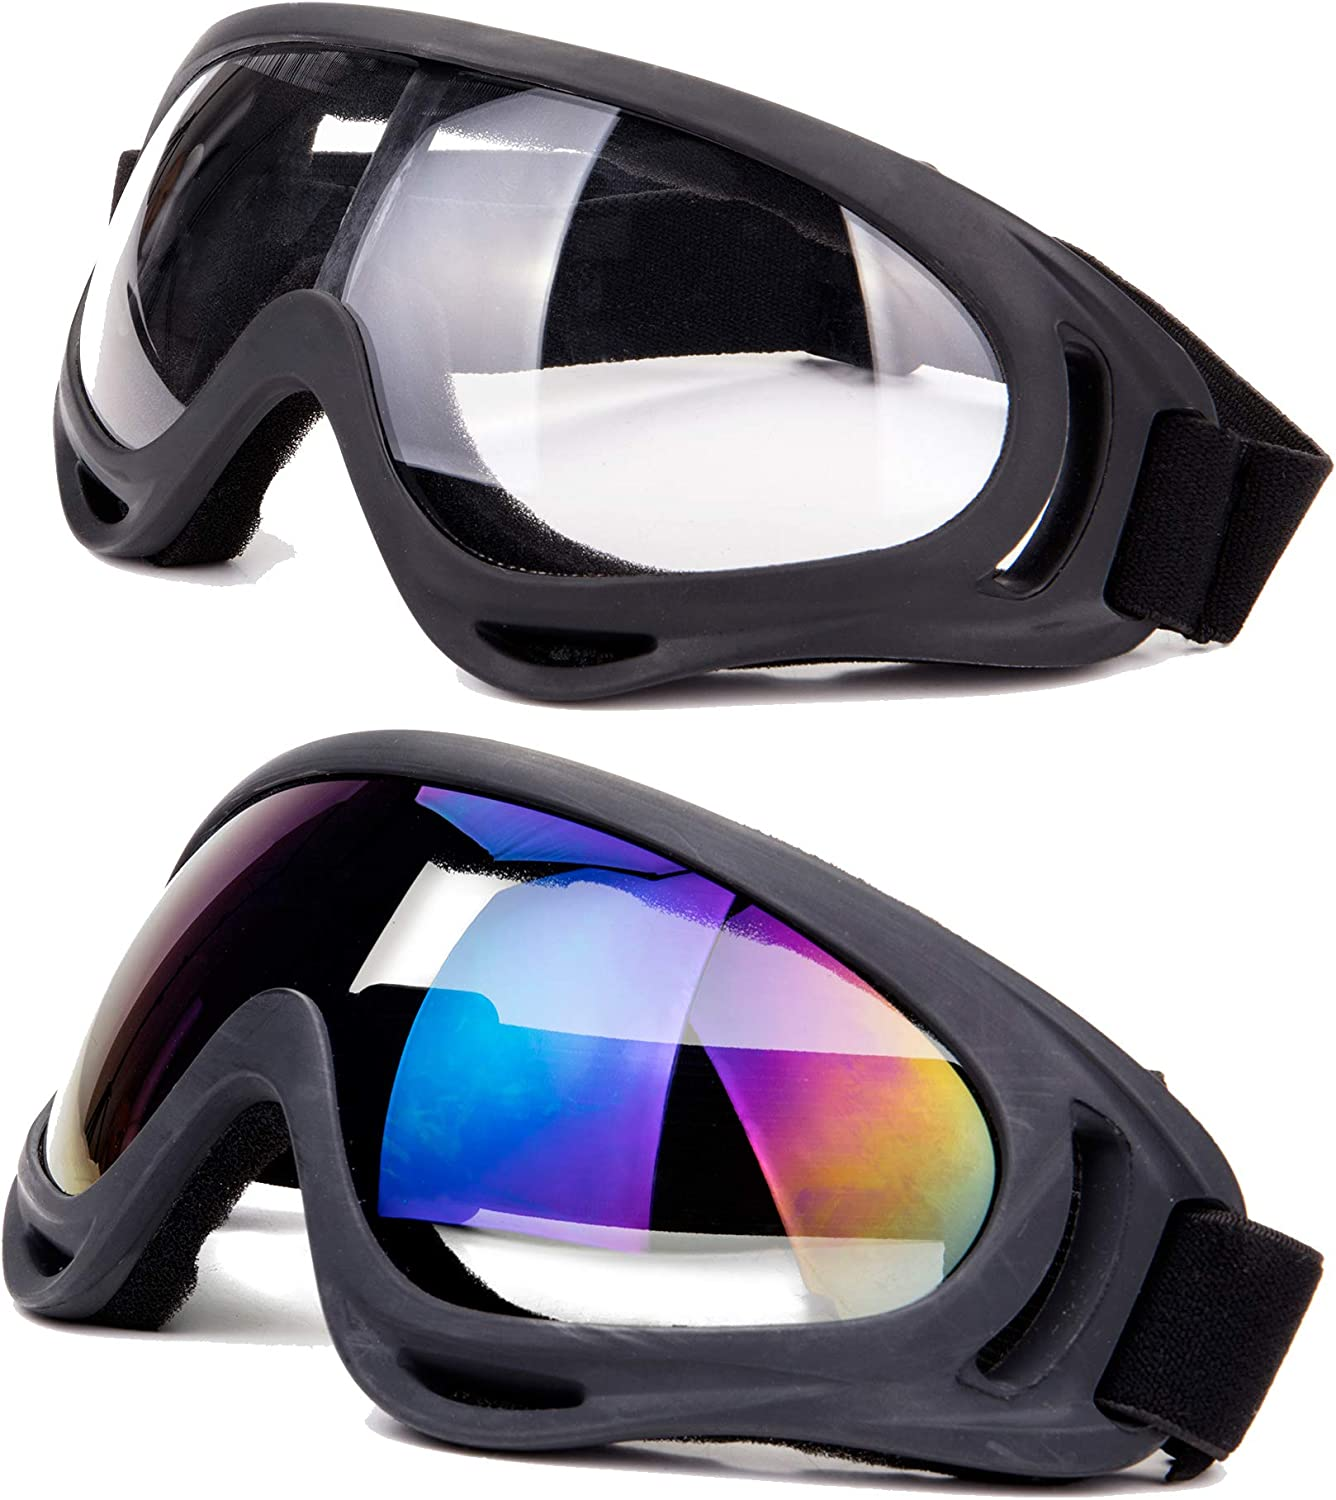 SLTY Sports Ski Snowboard Skate Goggles Motorcycle Off Road Glasses with UV 400 Protection,Anti-Fog,Wind Resistance Goggles for Men Women & Youth